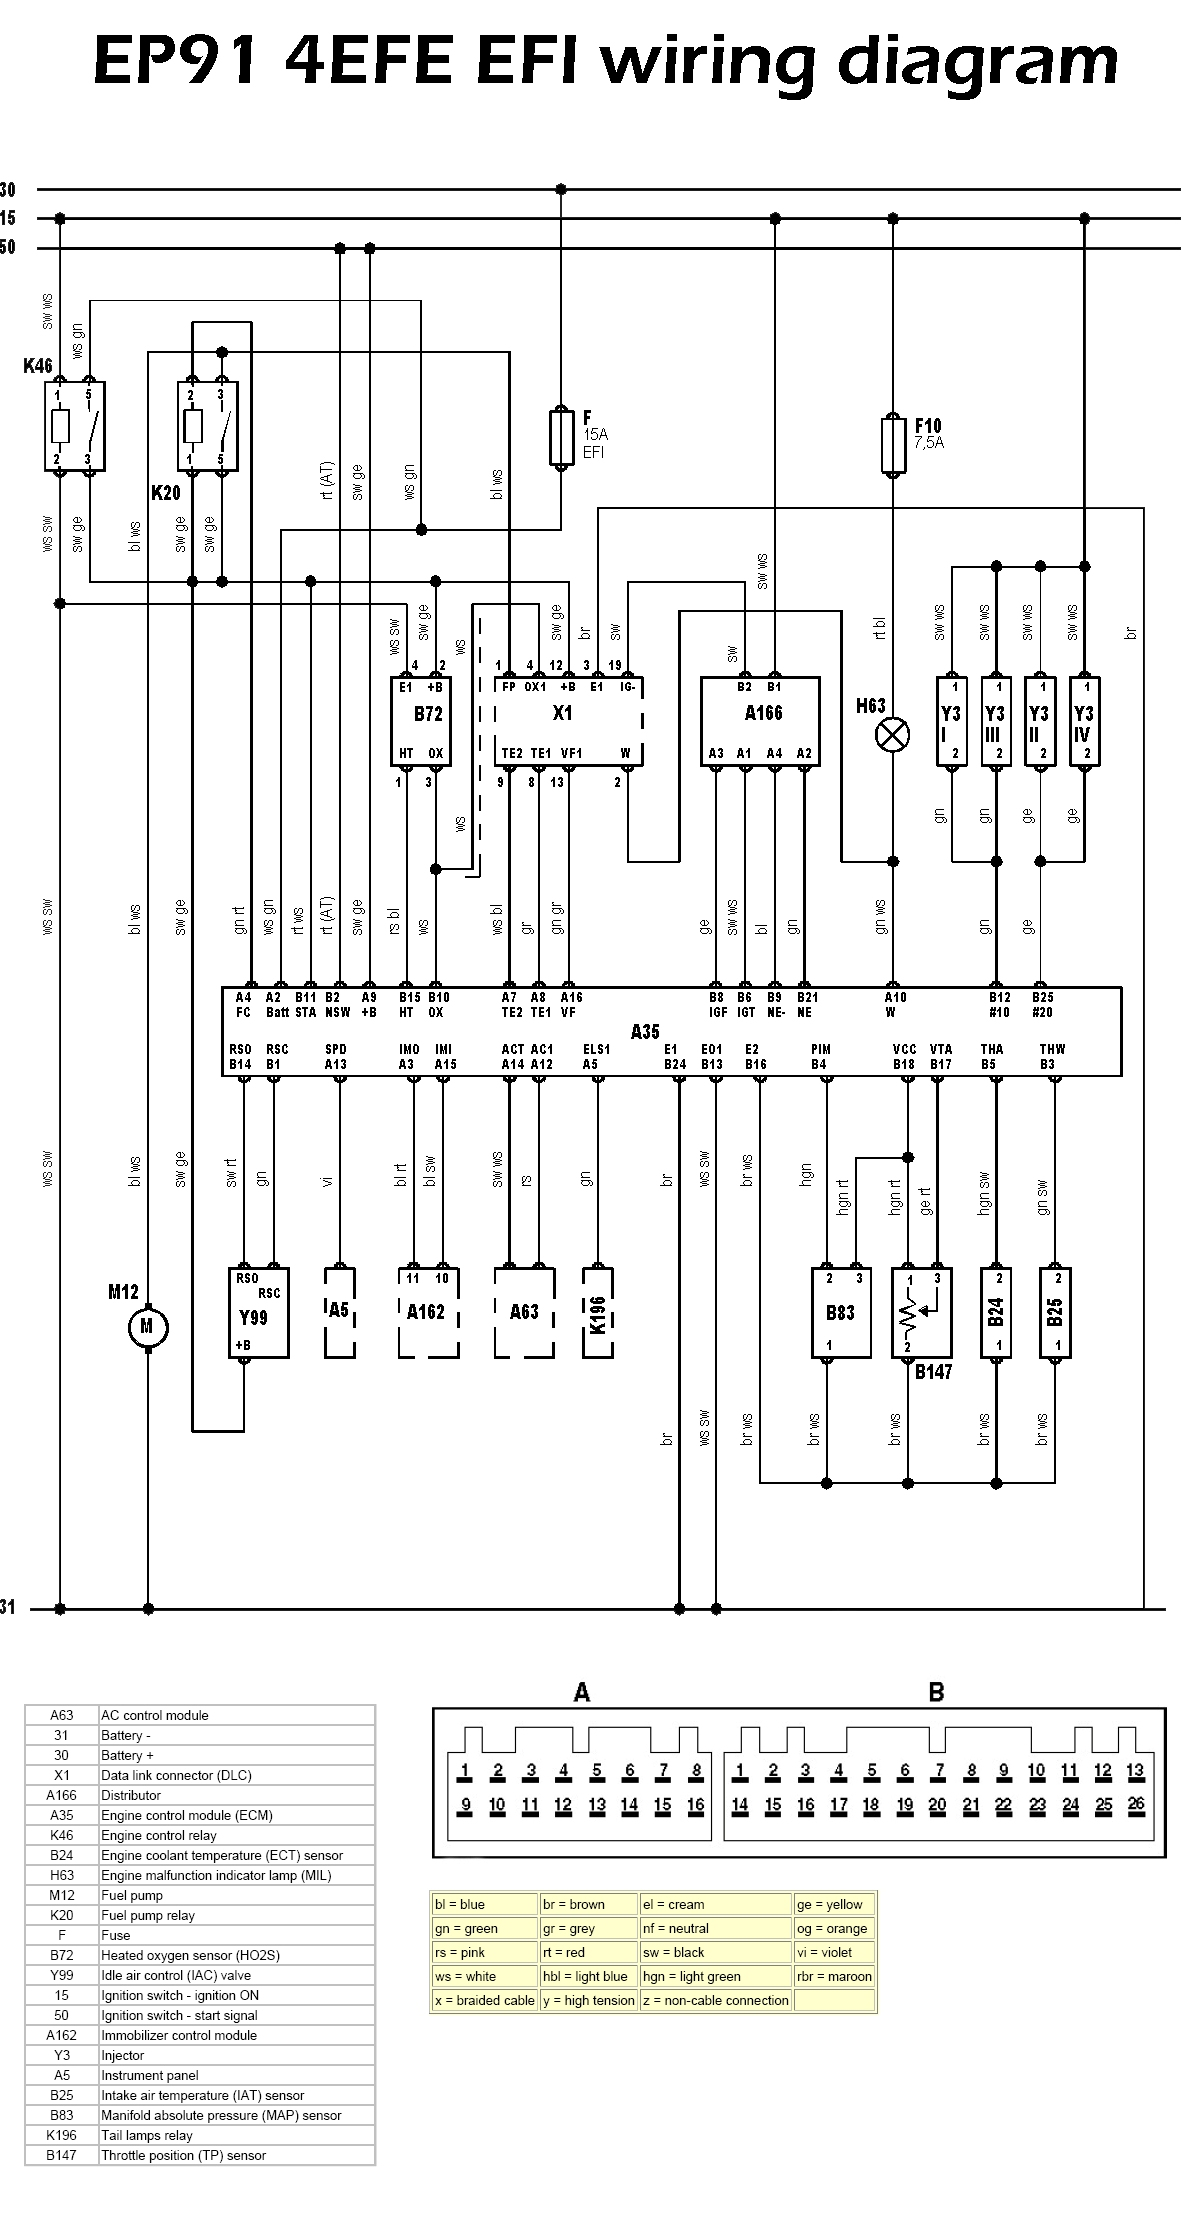 toyota starlet on toyota starlet electrical wiring diagram wiring  81 toyota starlet wiring diagram 81 toyota front spring hanger 81 rh banyan palace com